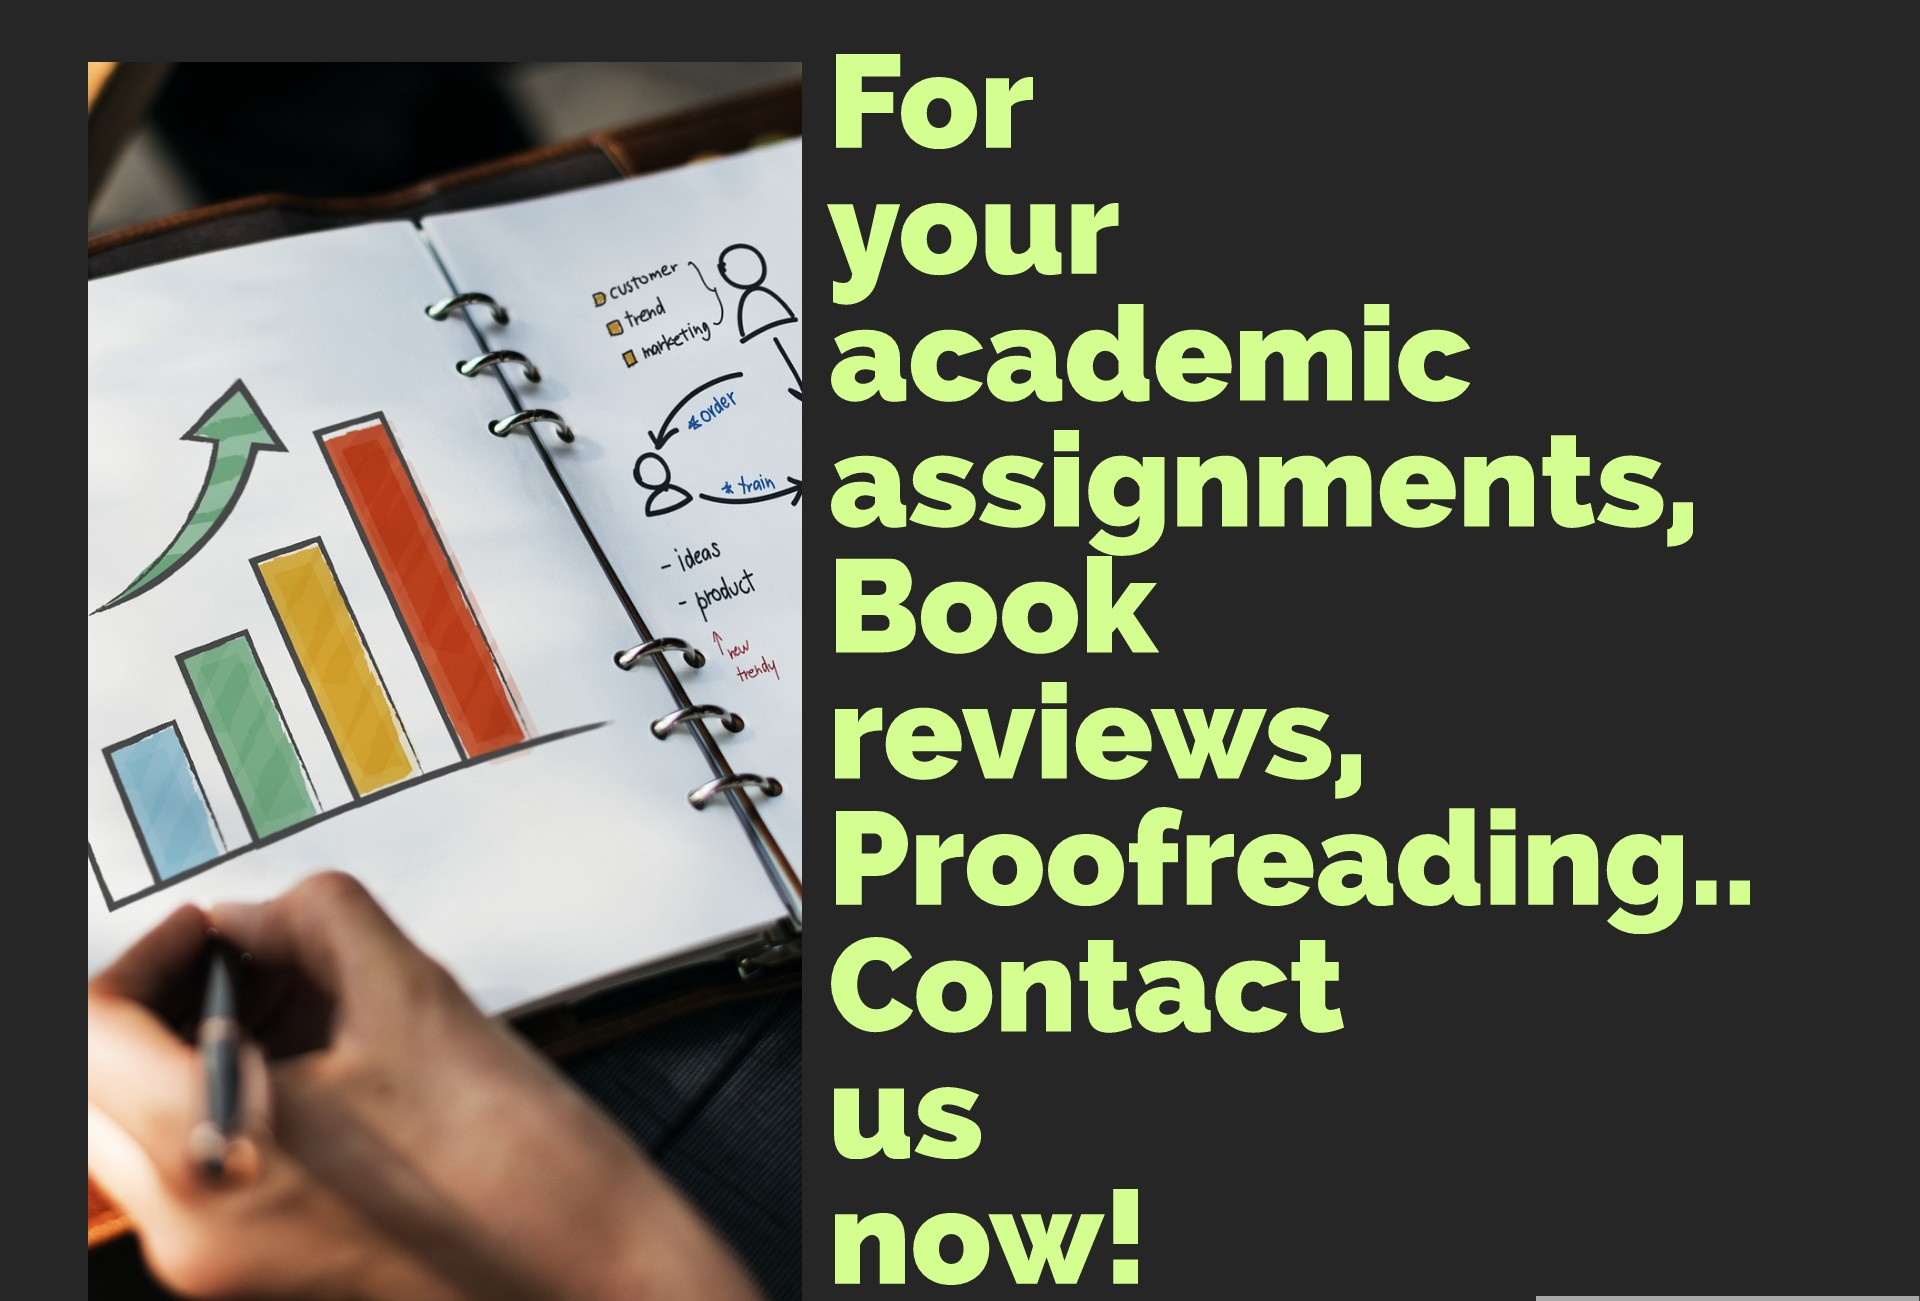 Academic Assistance for your assignments, projects etc